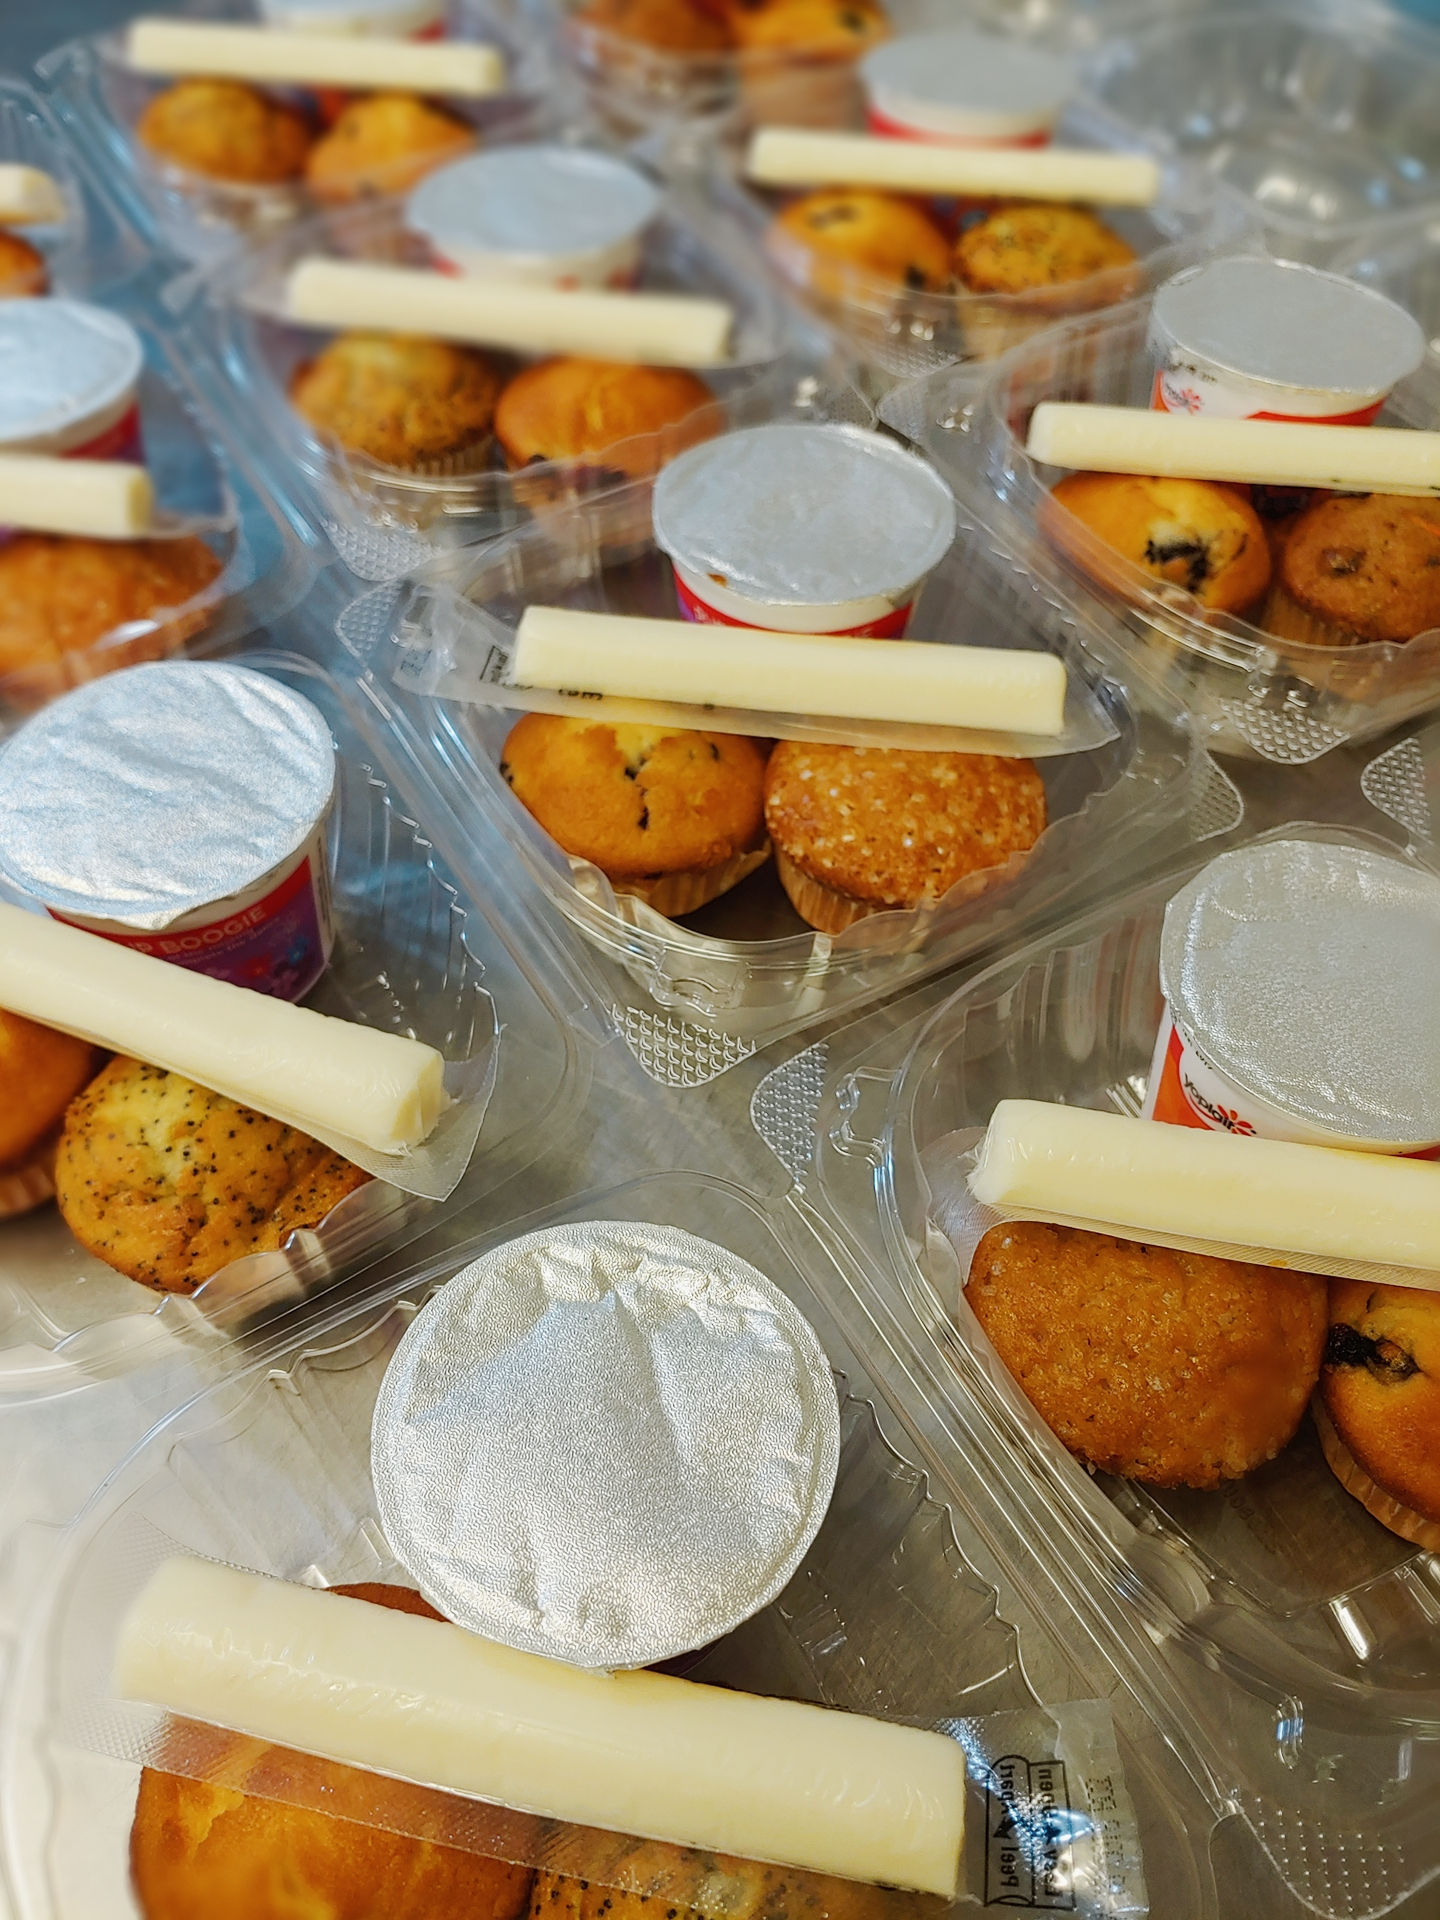 Muffins, cheese, and yogurt boxes